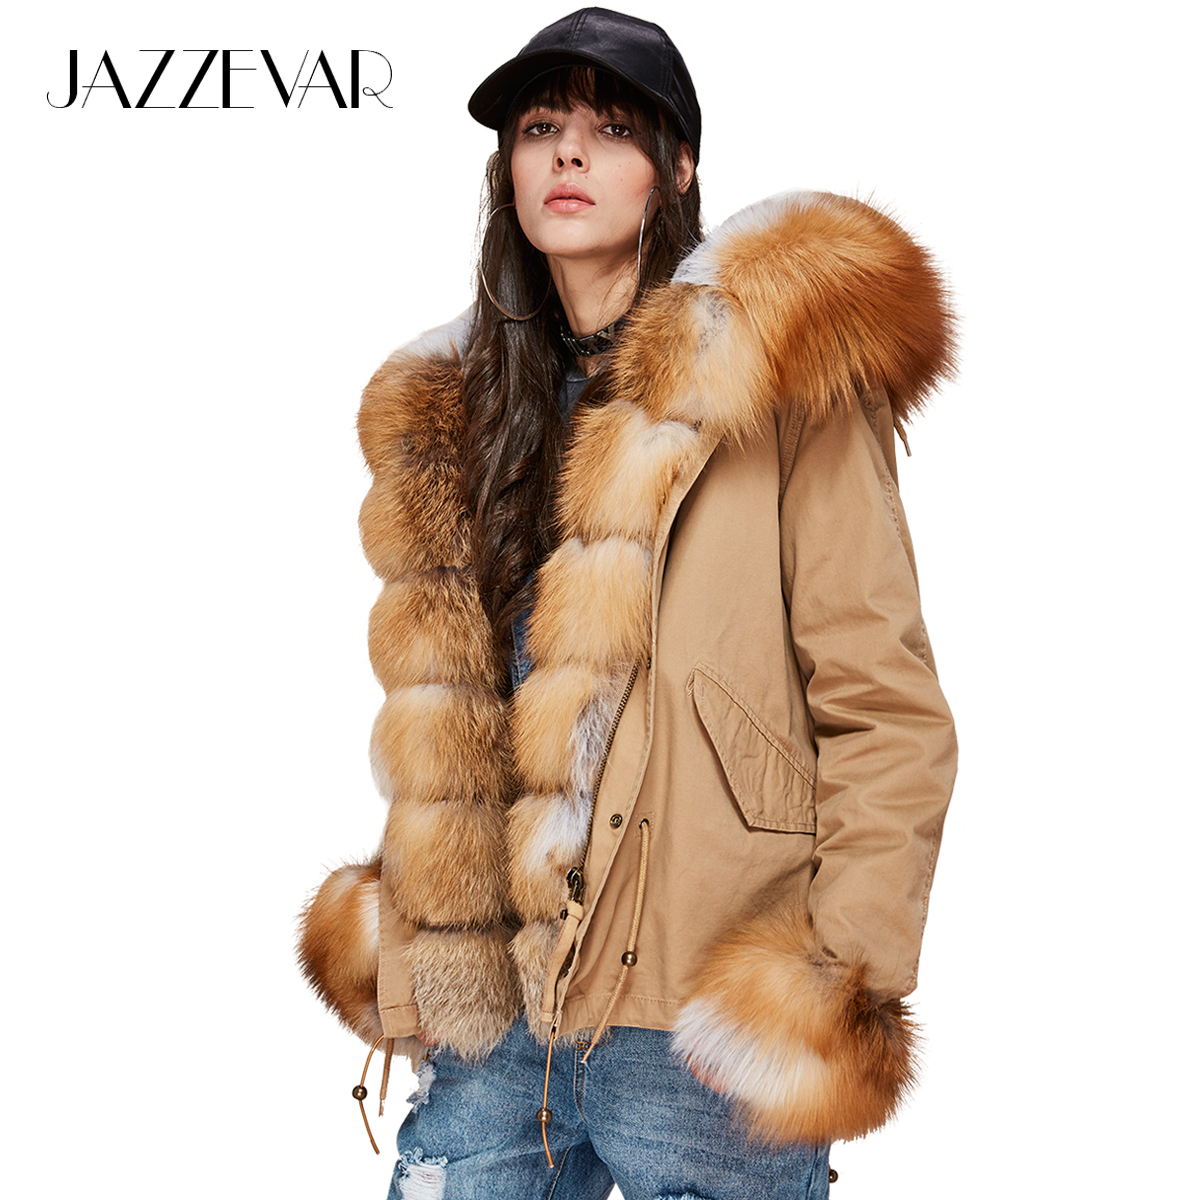 JAZZEVAR 2019 New Fashion Women s Luxurious Large Real Fox Fur Collar Cuff Hooded Coat Short